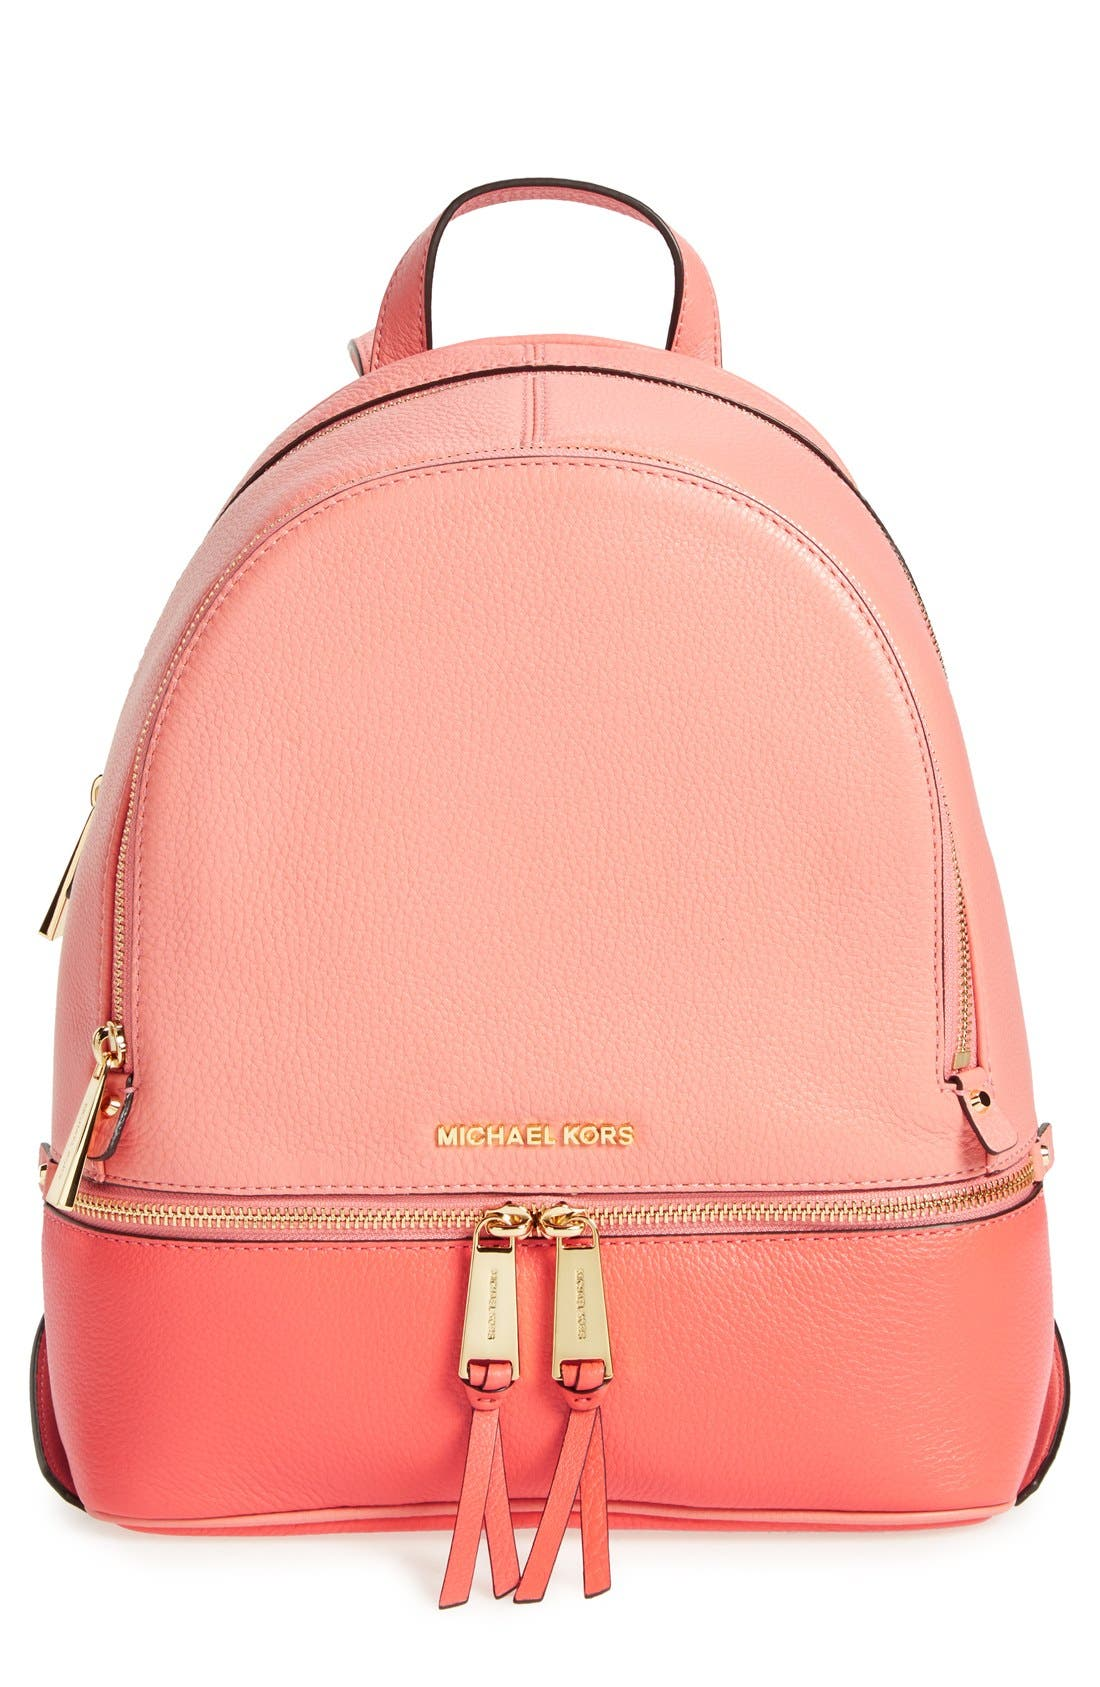 'Small Rhea' Colorblock Leather Backpack,                         Main,                         color, 950